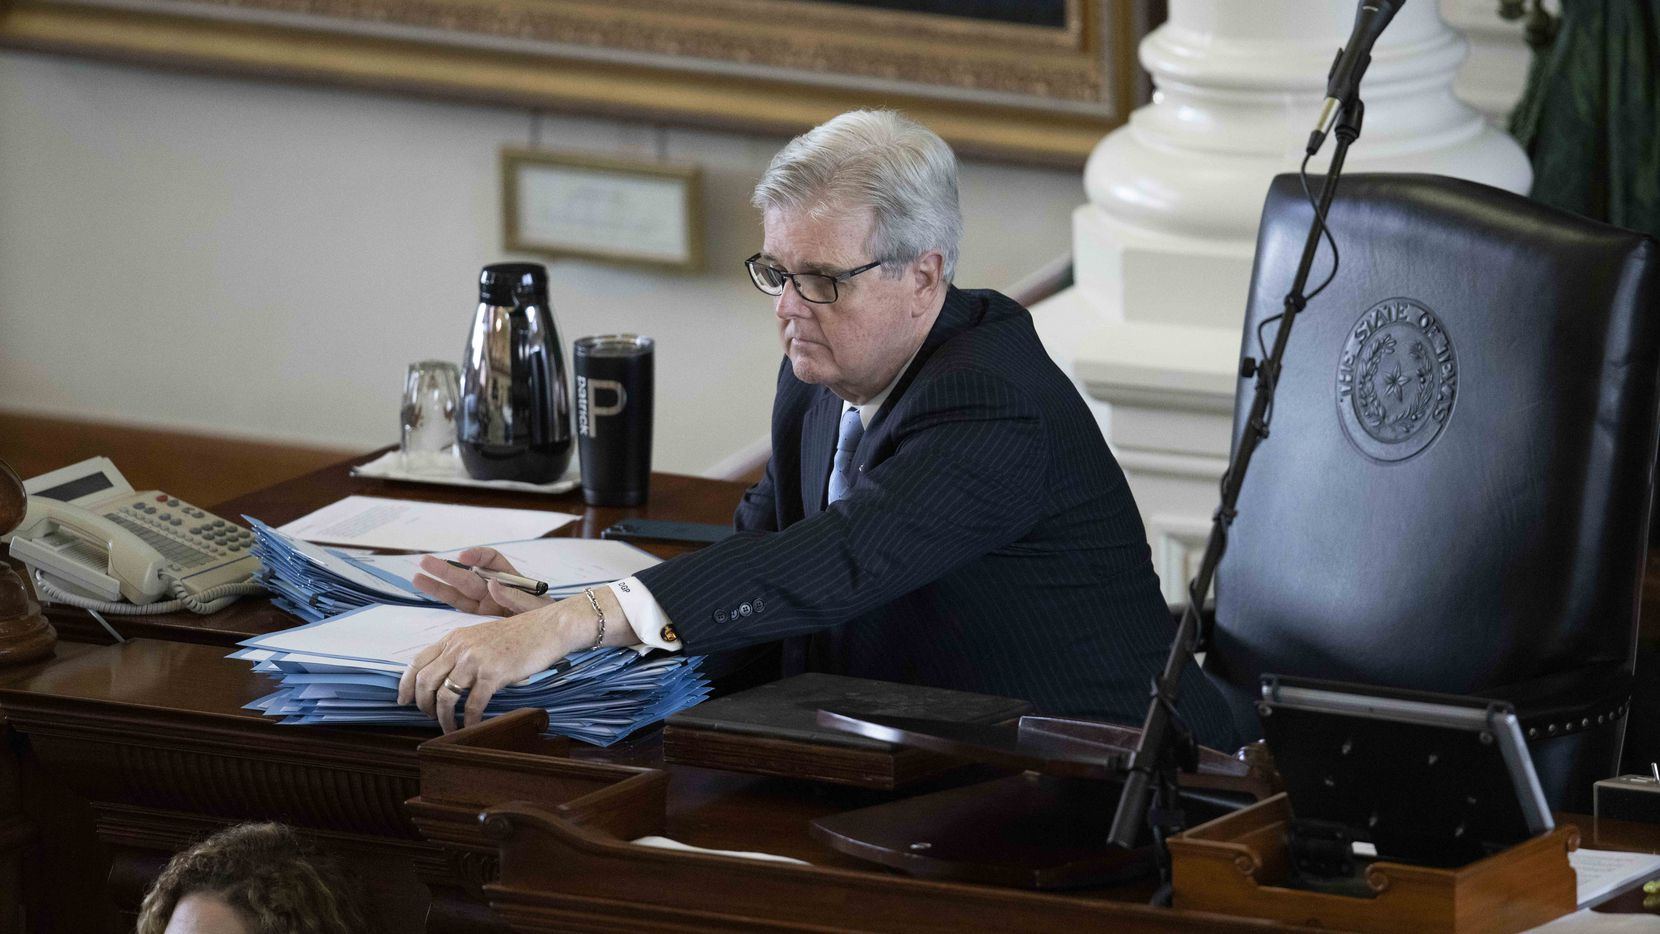 Lt. Gov. Dan Patrick controls the Texas Senate in action during May, 2021 of the the 87th Texas Legislative Session. The lieutenant governor said one item he would push the governor to add to his call of a special session would be ratepayer assistance to help Texans cope with increased energy bills caused by the February's winter storm.